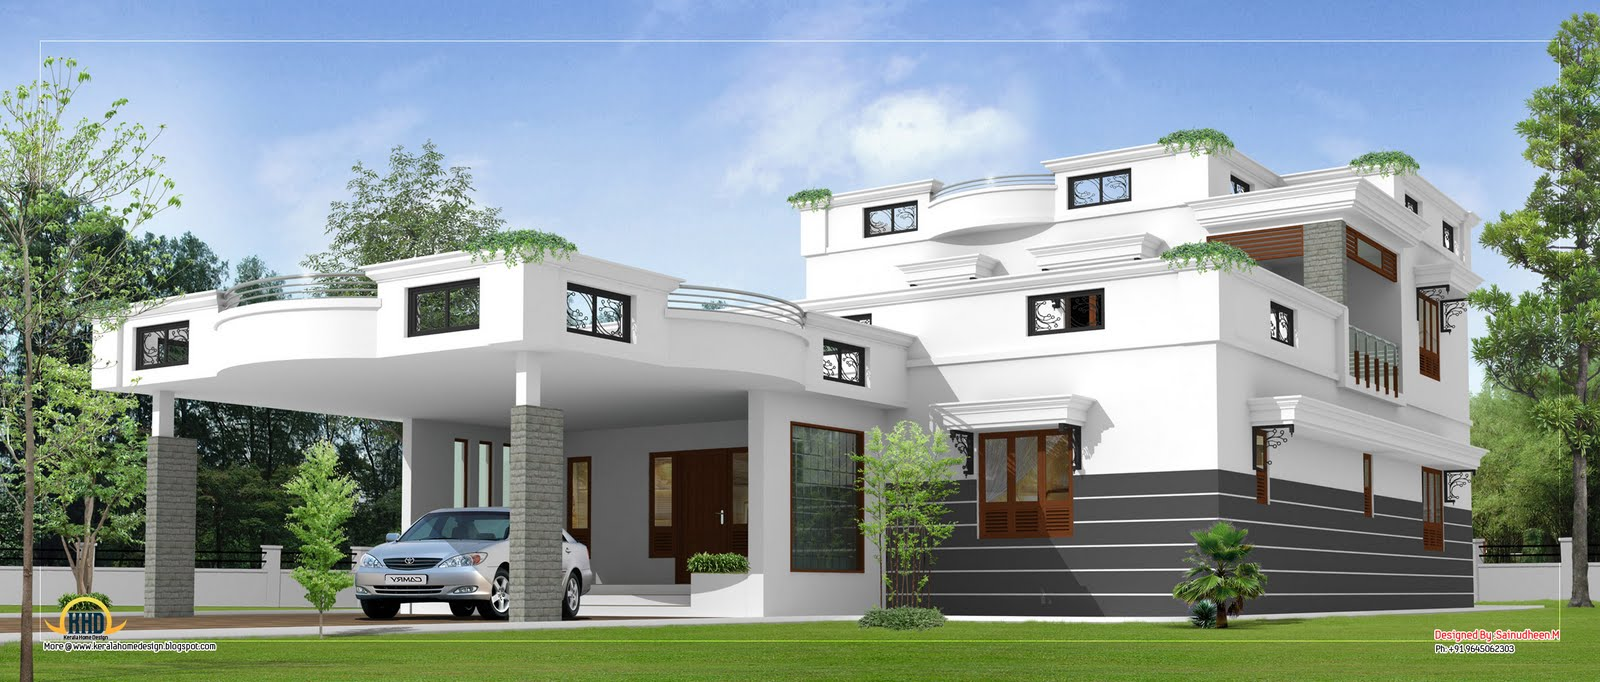 ... Home Design - 3360 Sq.Ft. - Kerala home design and floor plans: www.keralahousedesigns.com/2012/01/contemporary-home-design-3360...